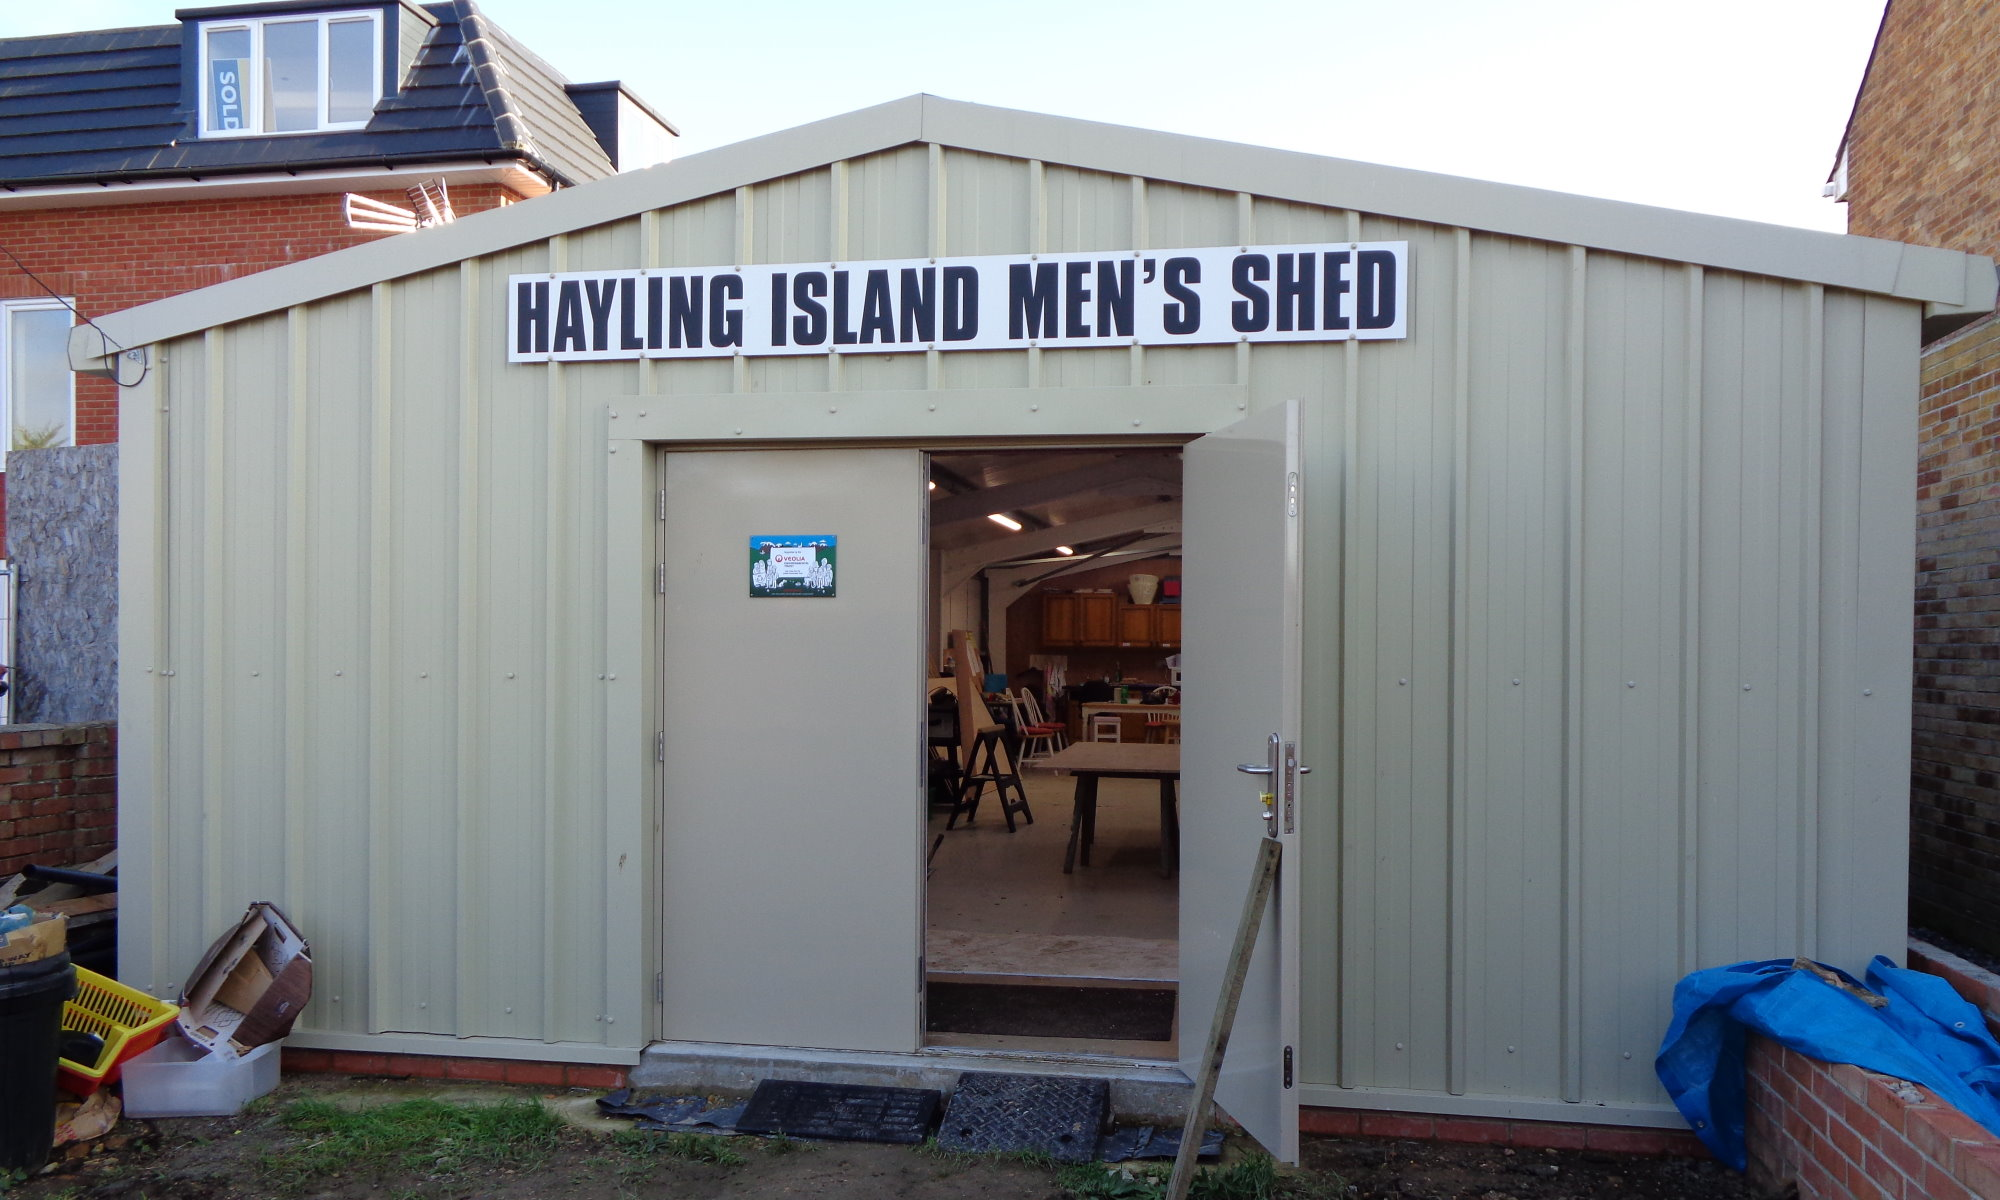 Hayling Island Men's Shed